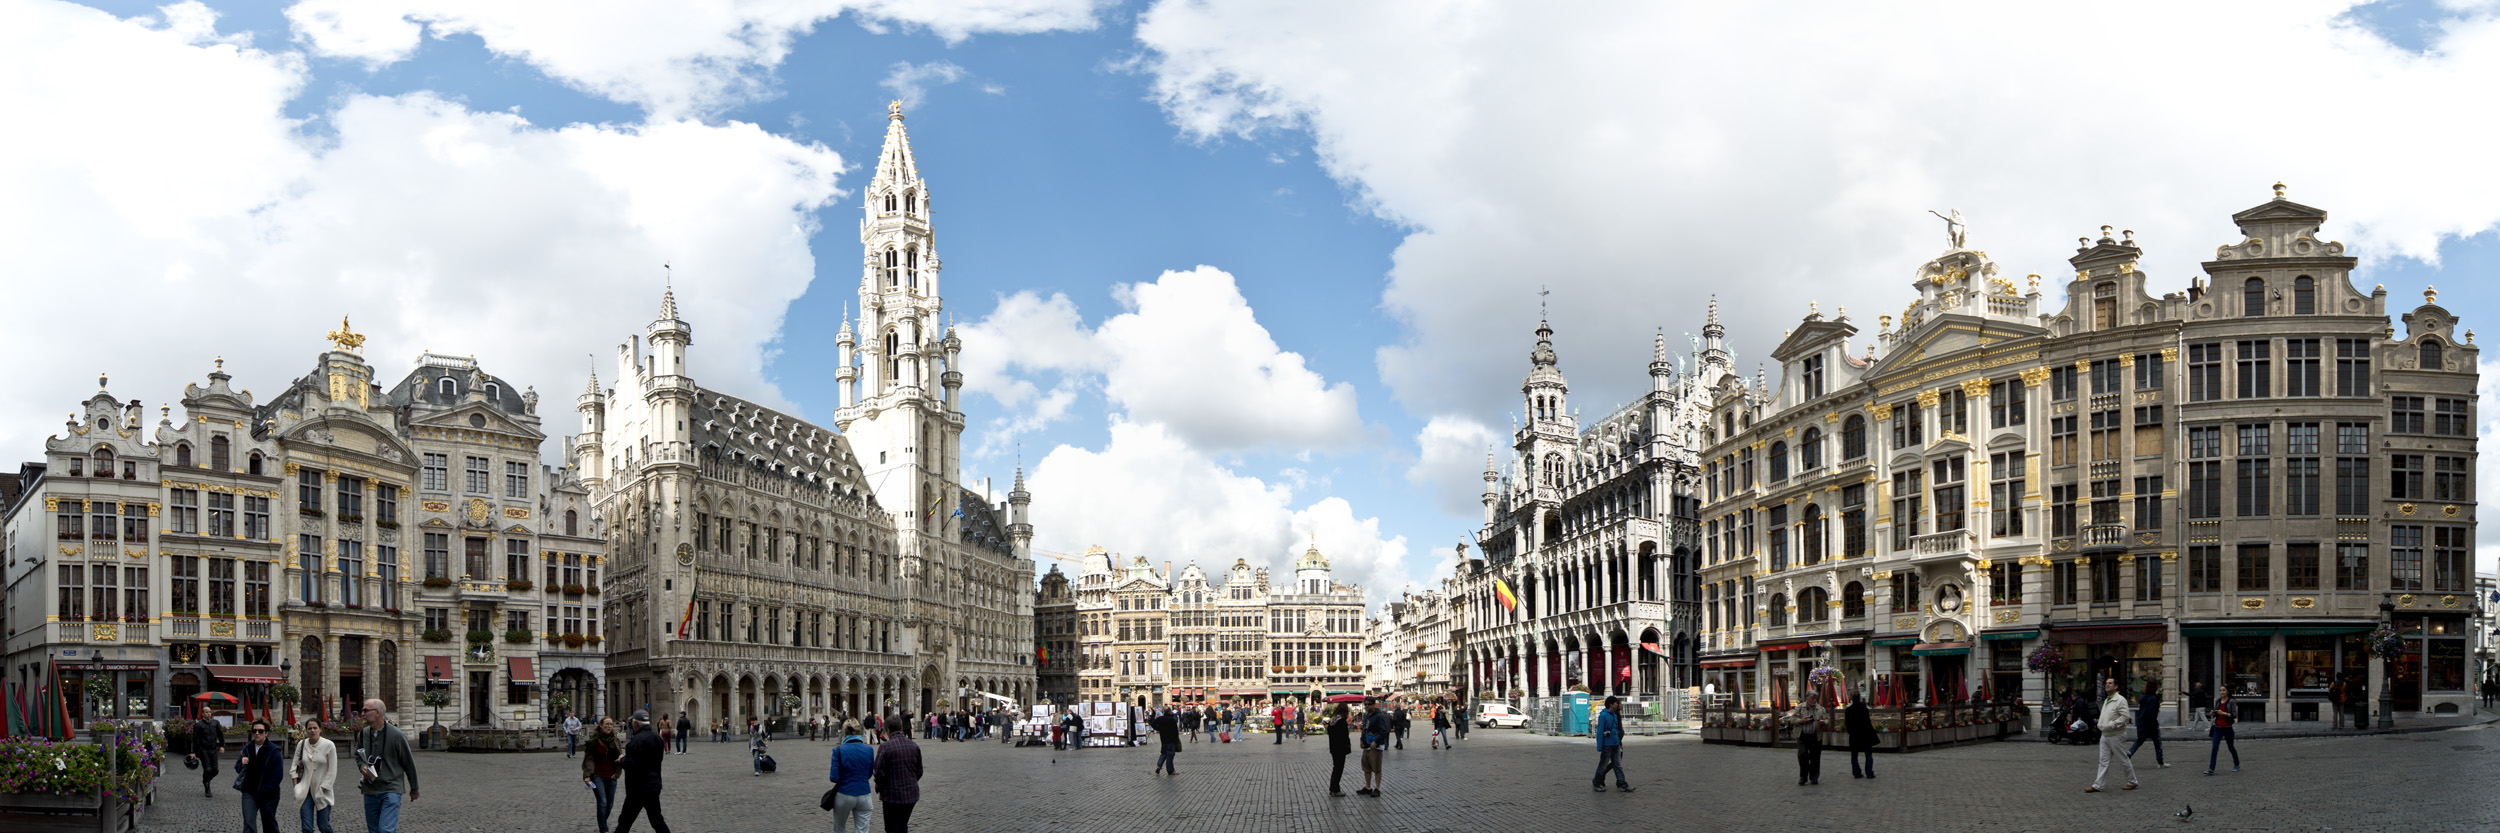 Music City Brussels